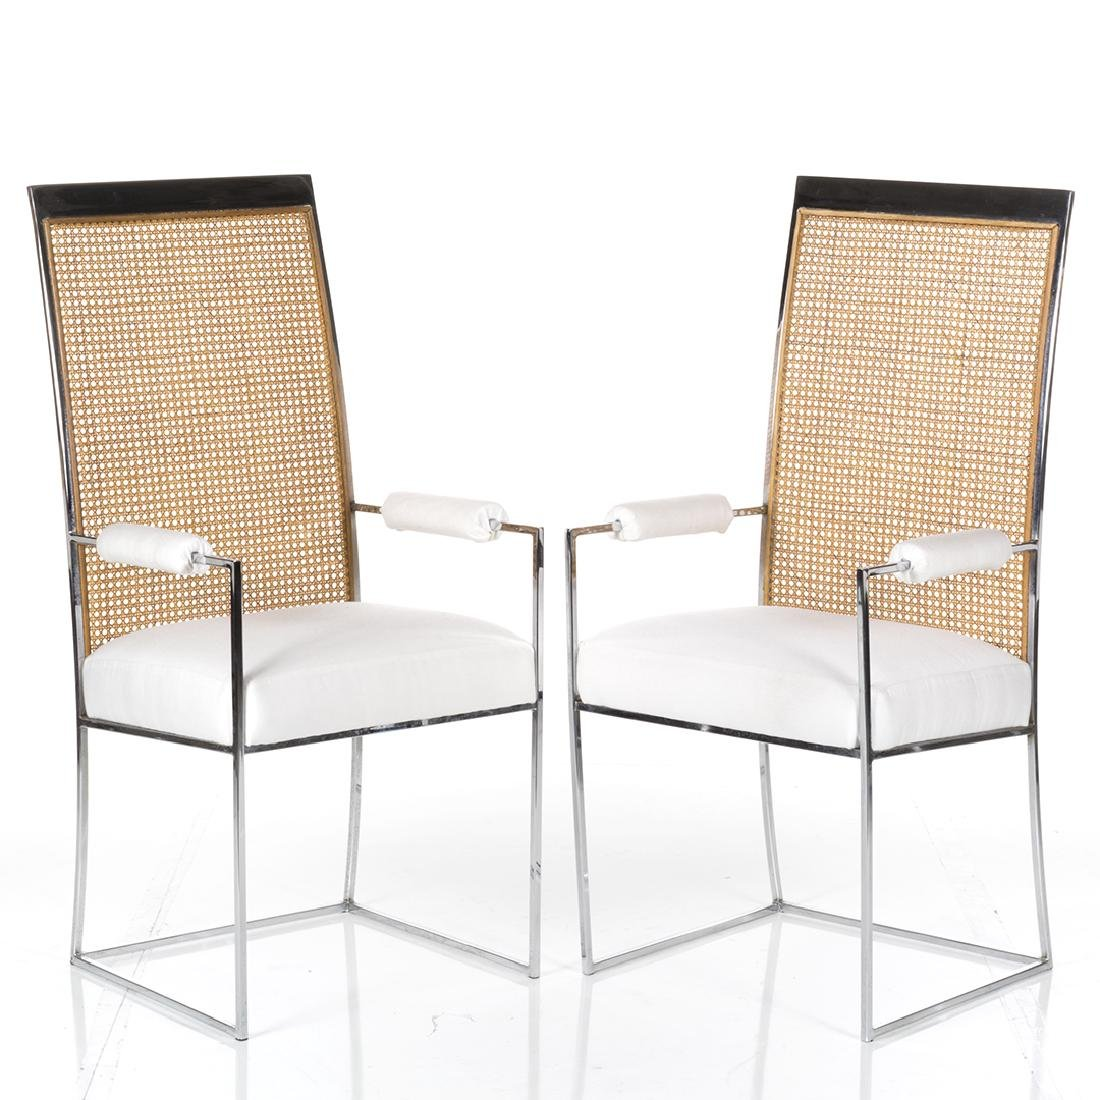 Milo Baughman Dining Chairs (6) - 3